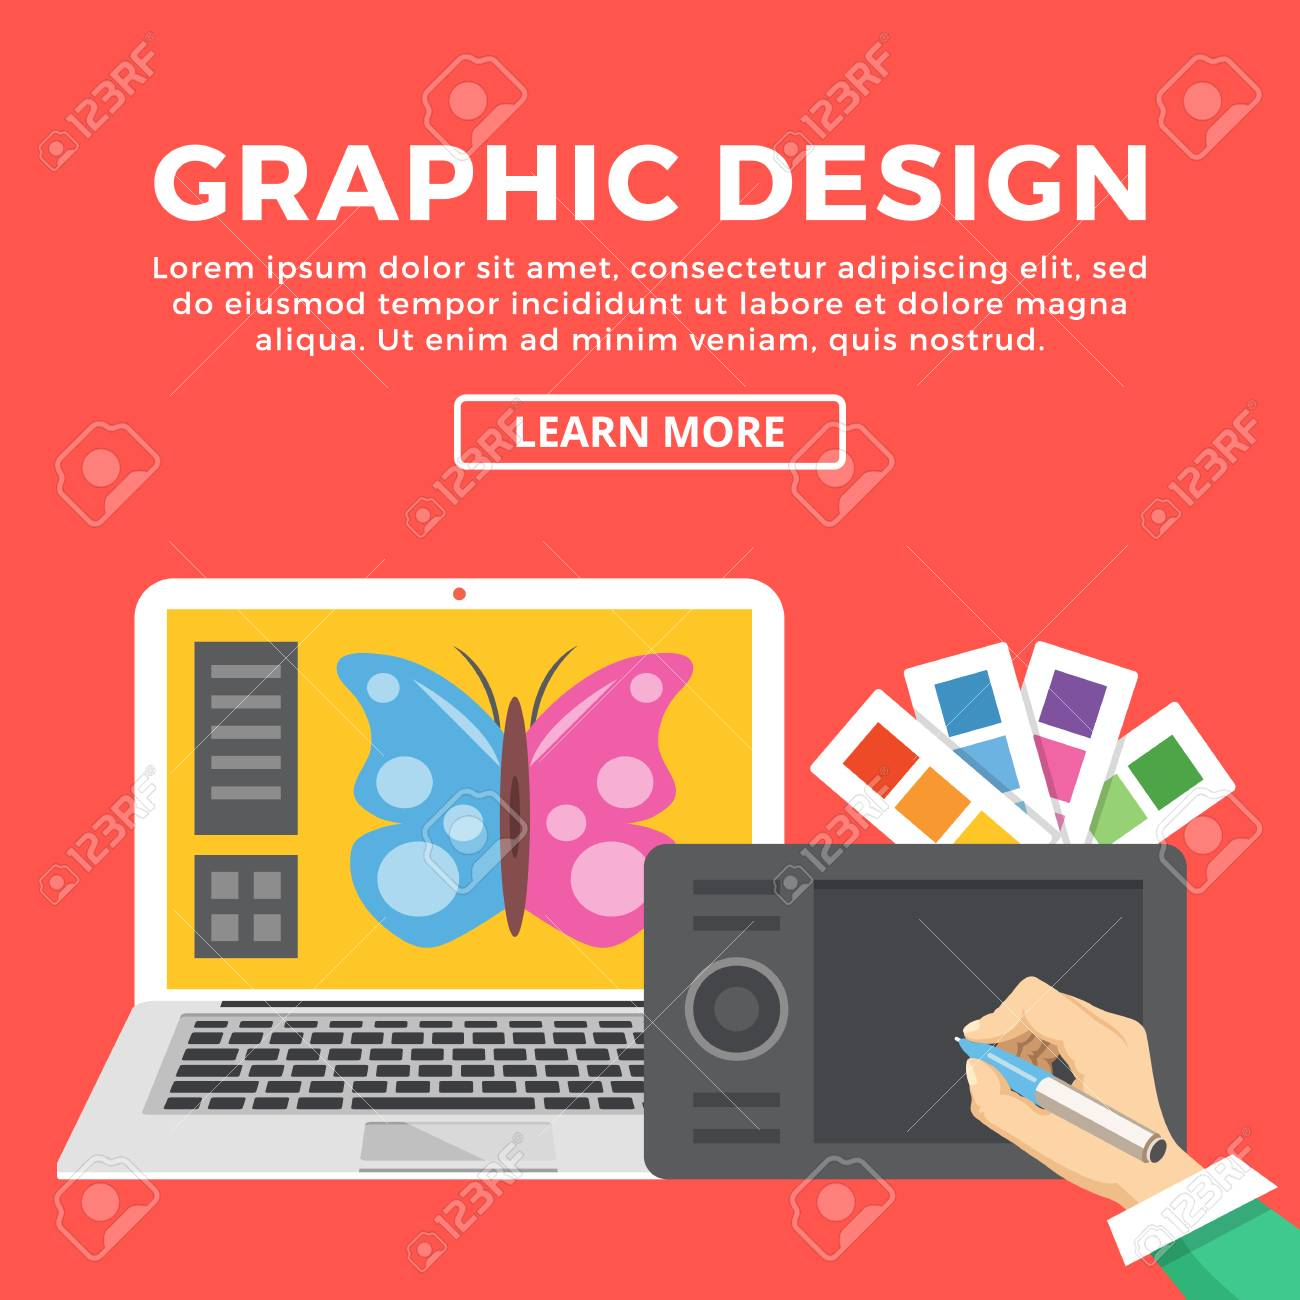 Graphic Design Web Banner. Hand With Pen Drawing With Digital ...